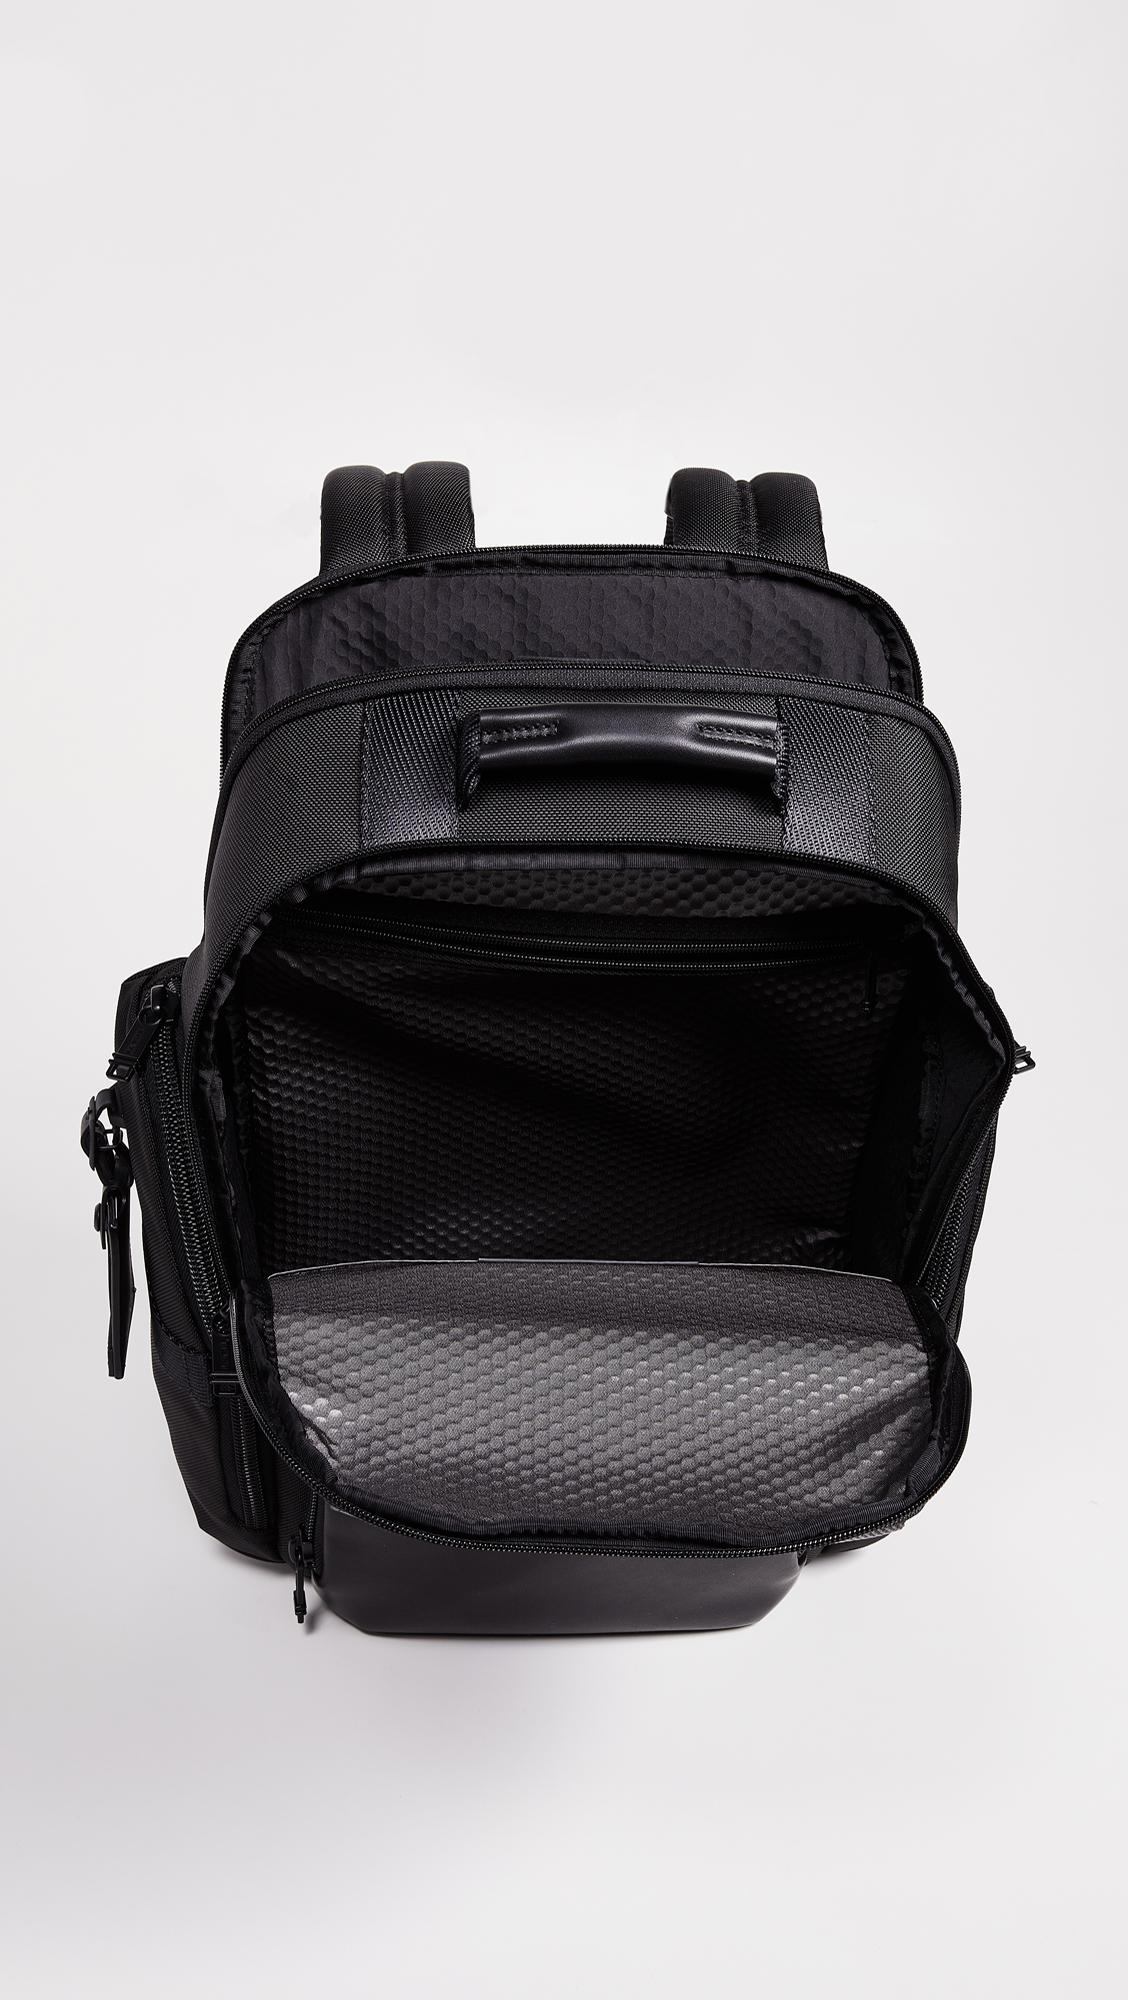 5b443b999 Tumi Alpha Bravo Sheppard Deluxe Backpack in Black for Men - Lyst